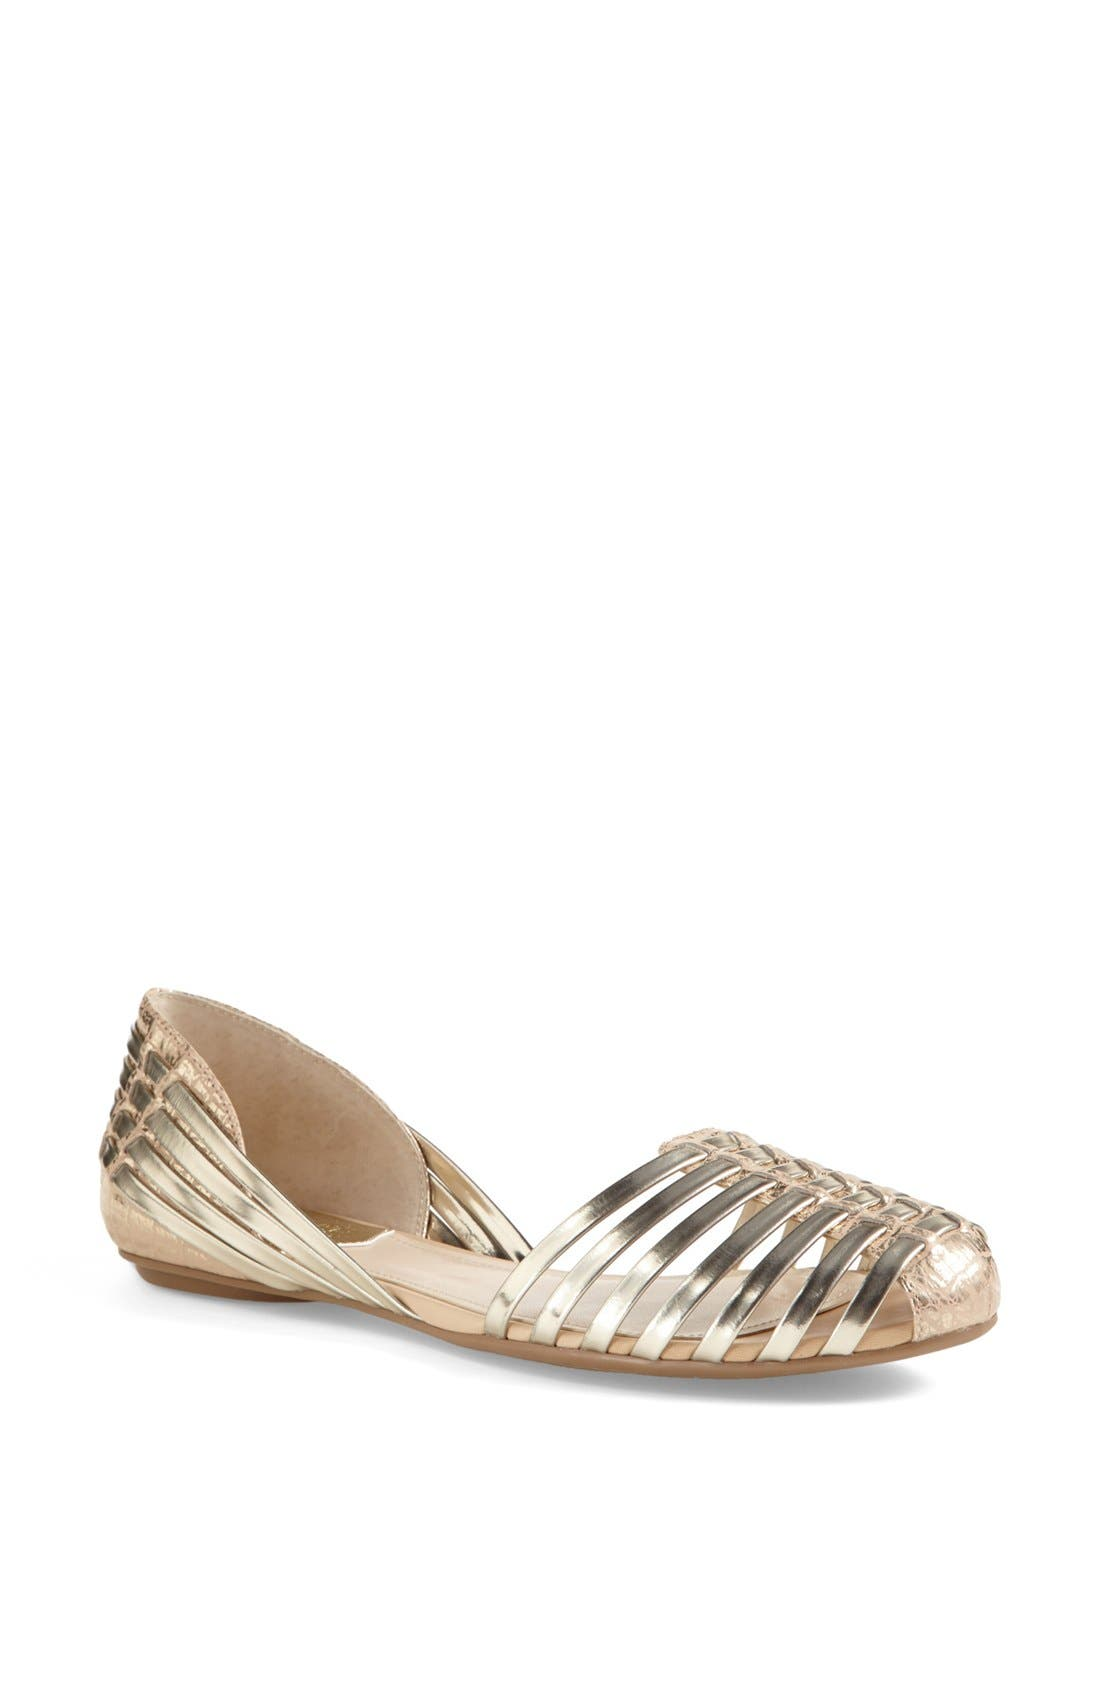 Main Image - Vince Camuto 'Caprio' Flat